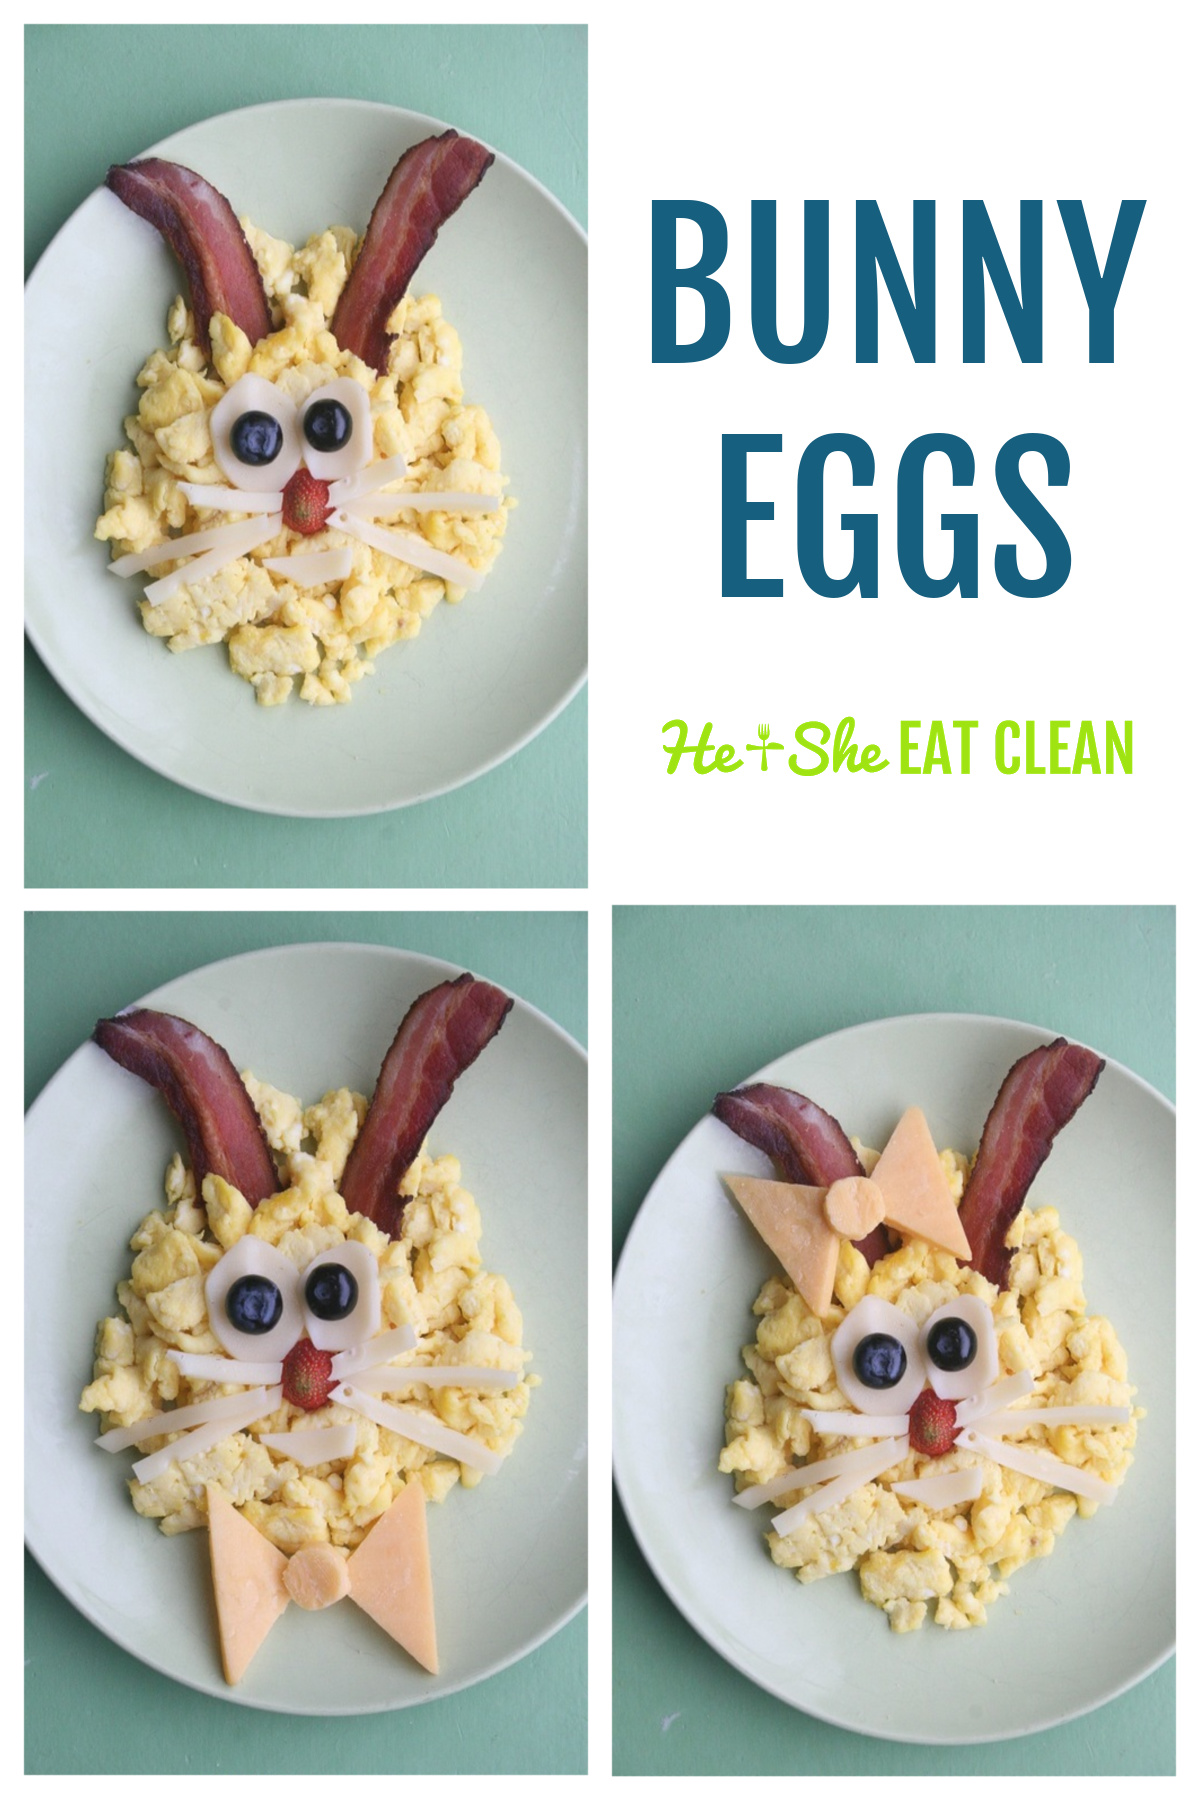 collage of Bunny Eggs - eggs arranged to look like a Easter Bunny on a white plate